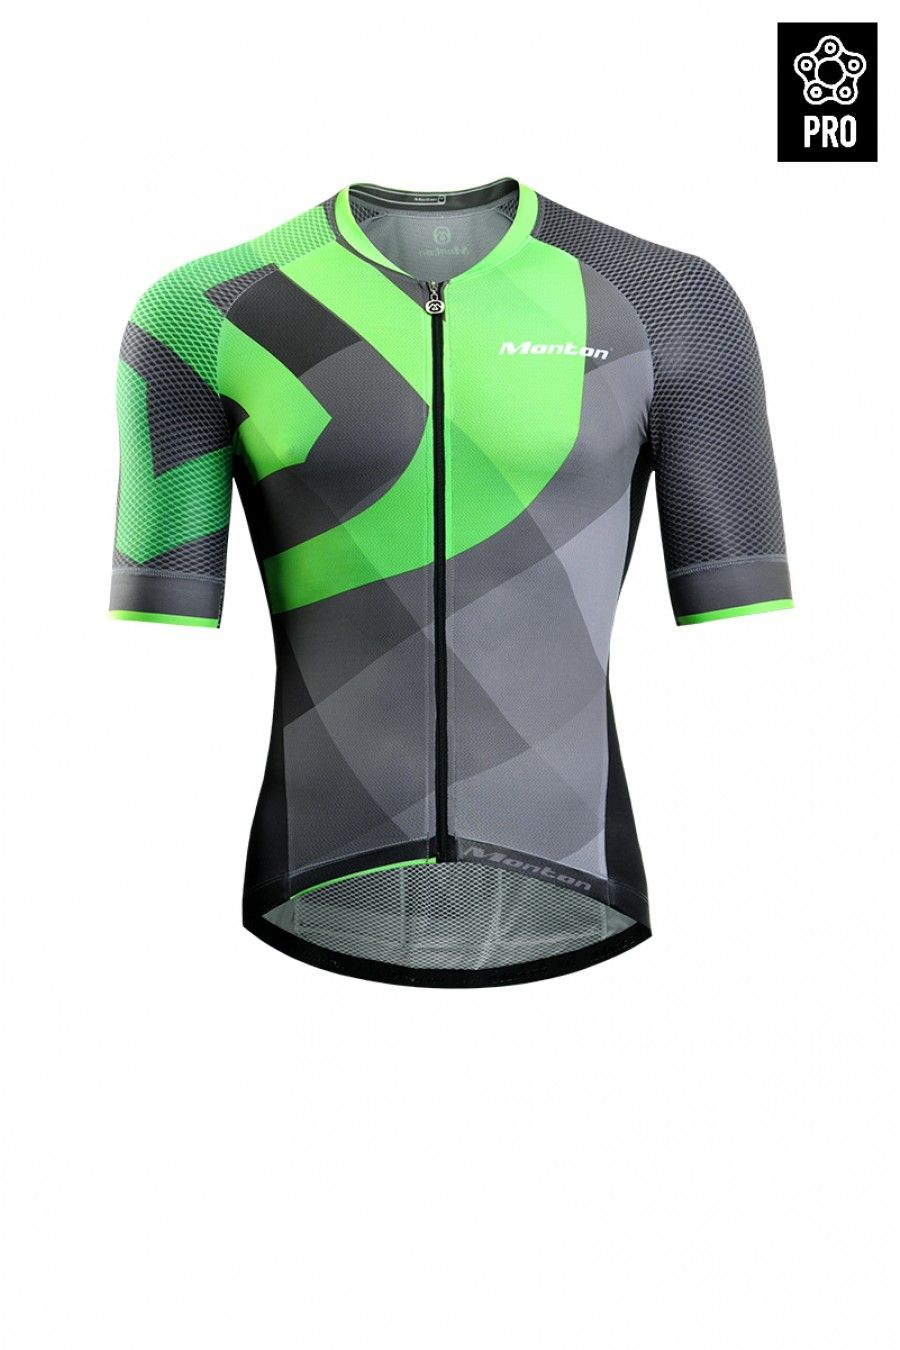 Cool Bike Jerseys Cycling Jersey Design Bike Jersey Cycling Outfit